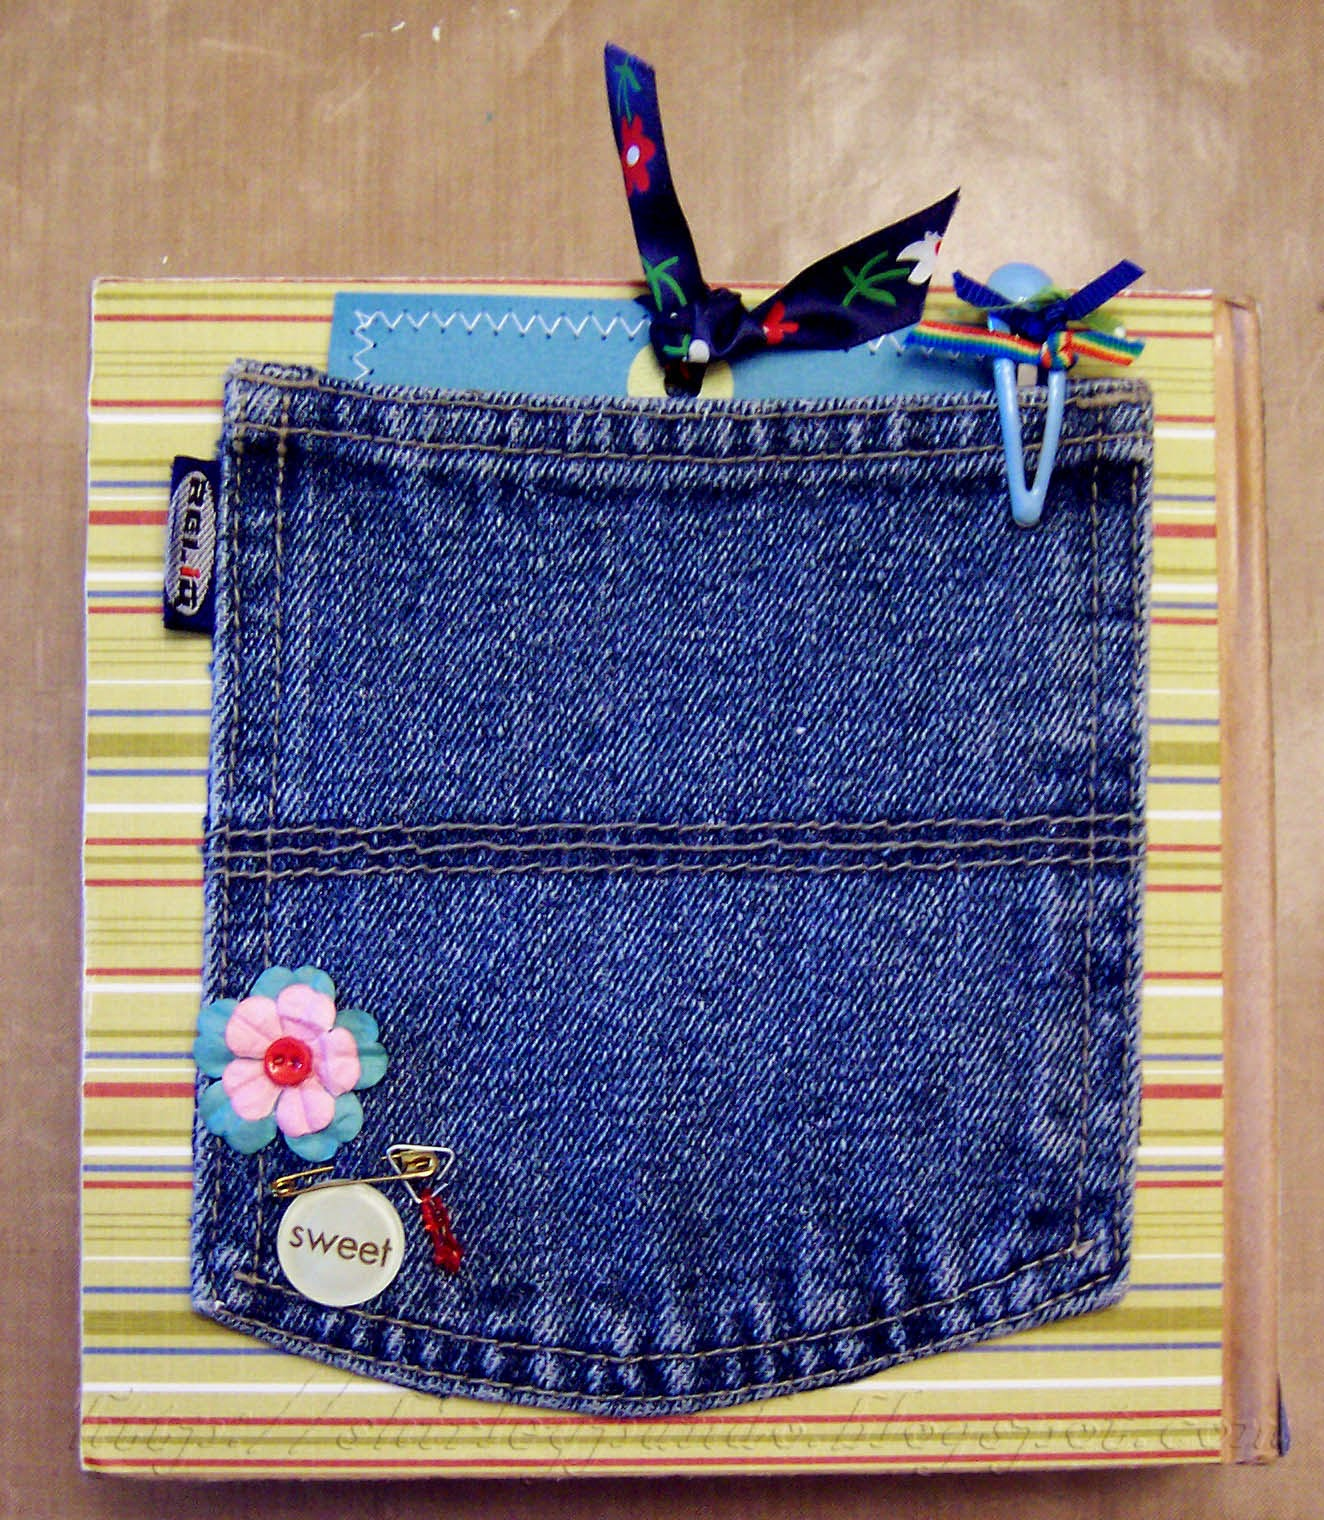 Blue Jean Pocket on MiniBook